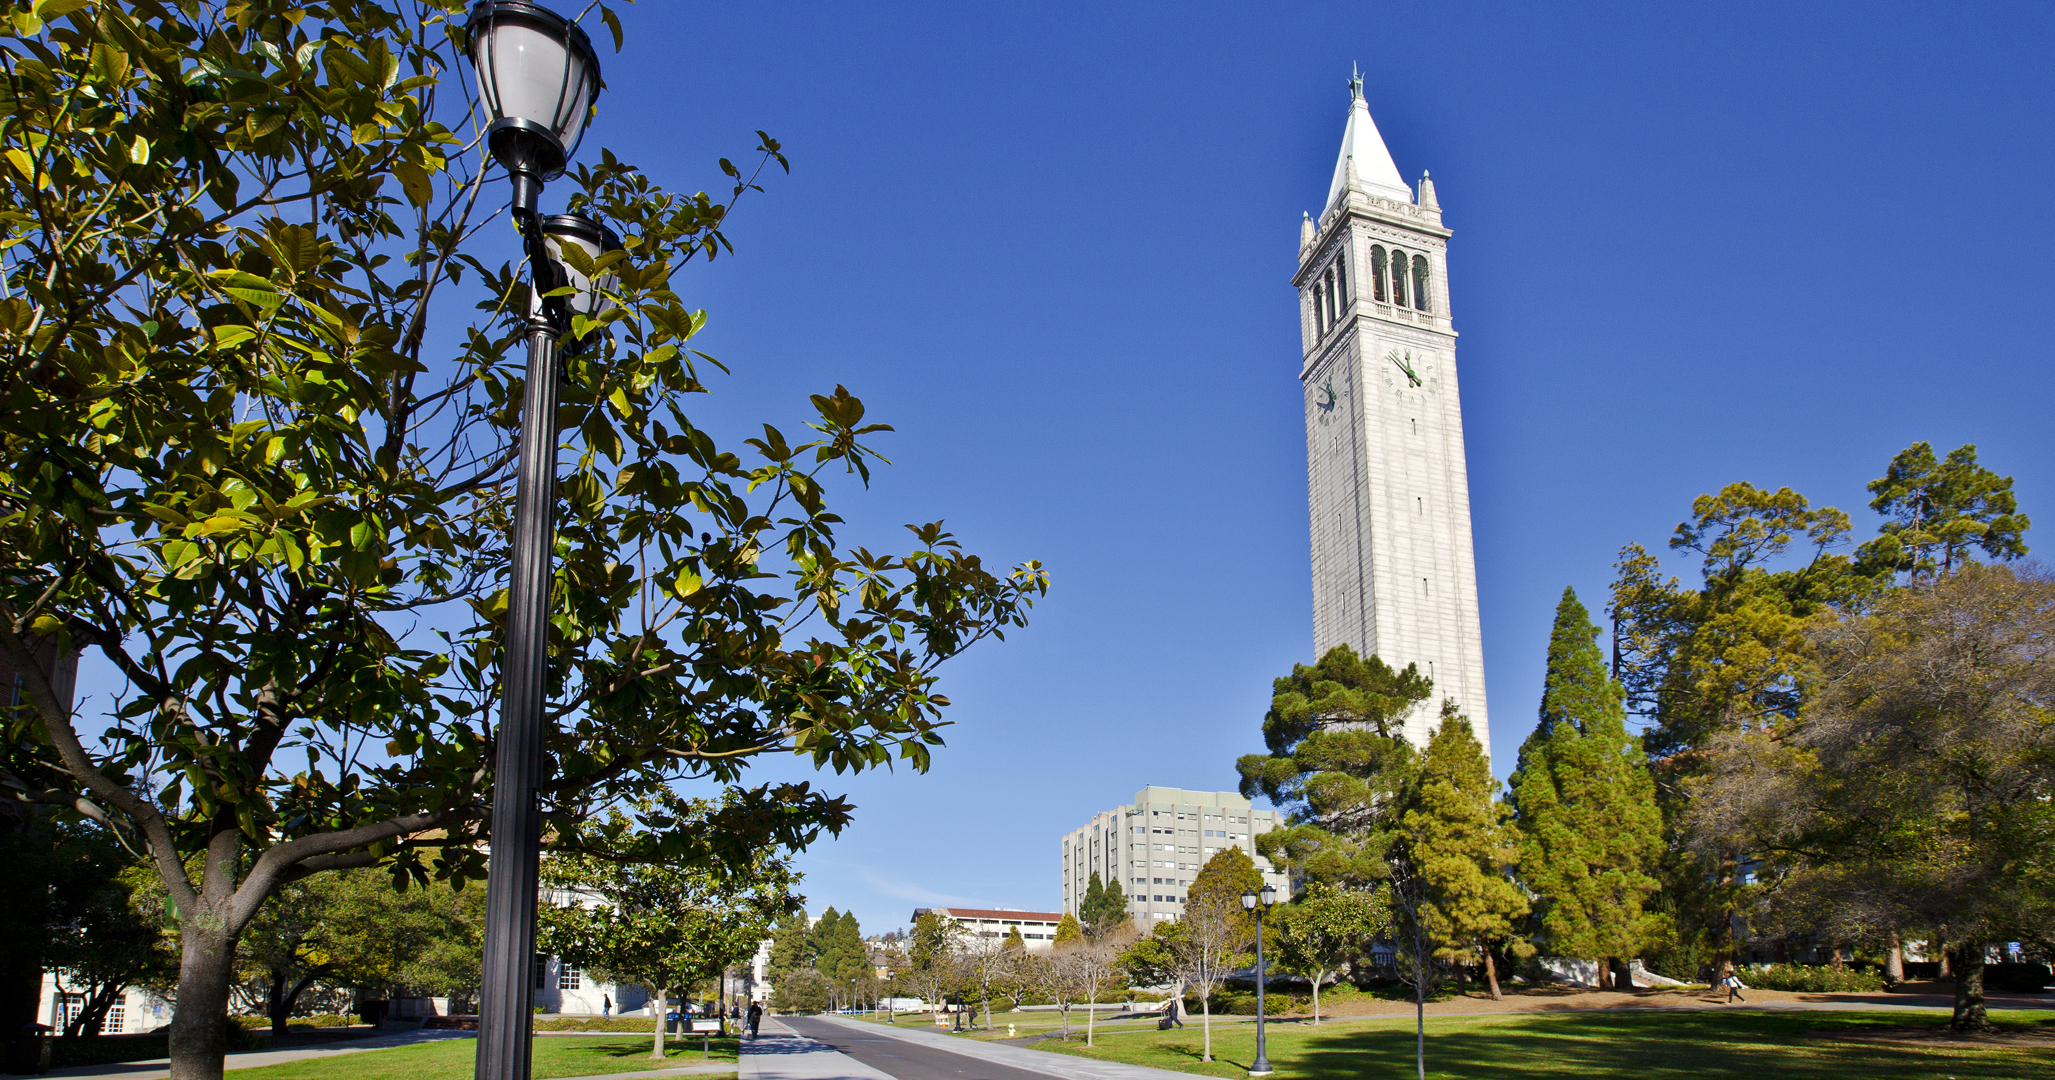 UC Berkeley is seen in an undated photo. (Credit: iStock/Getty Images)